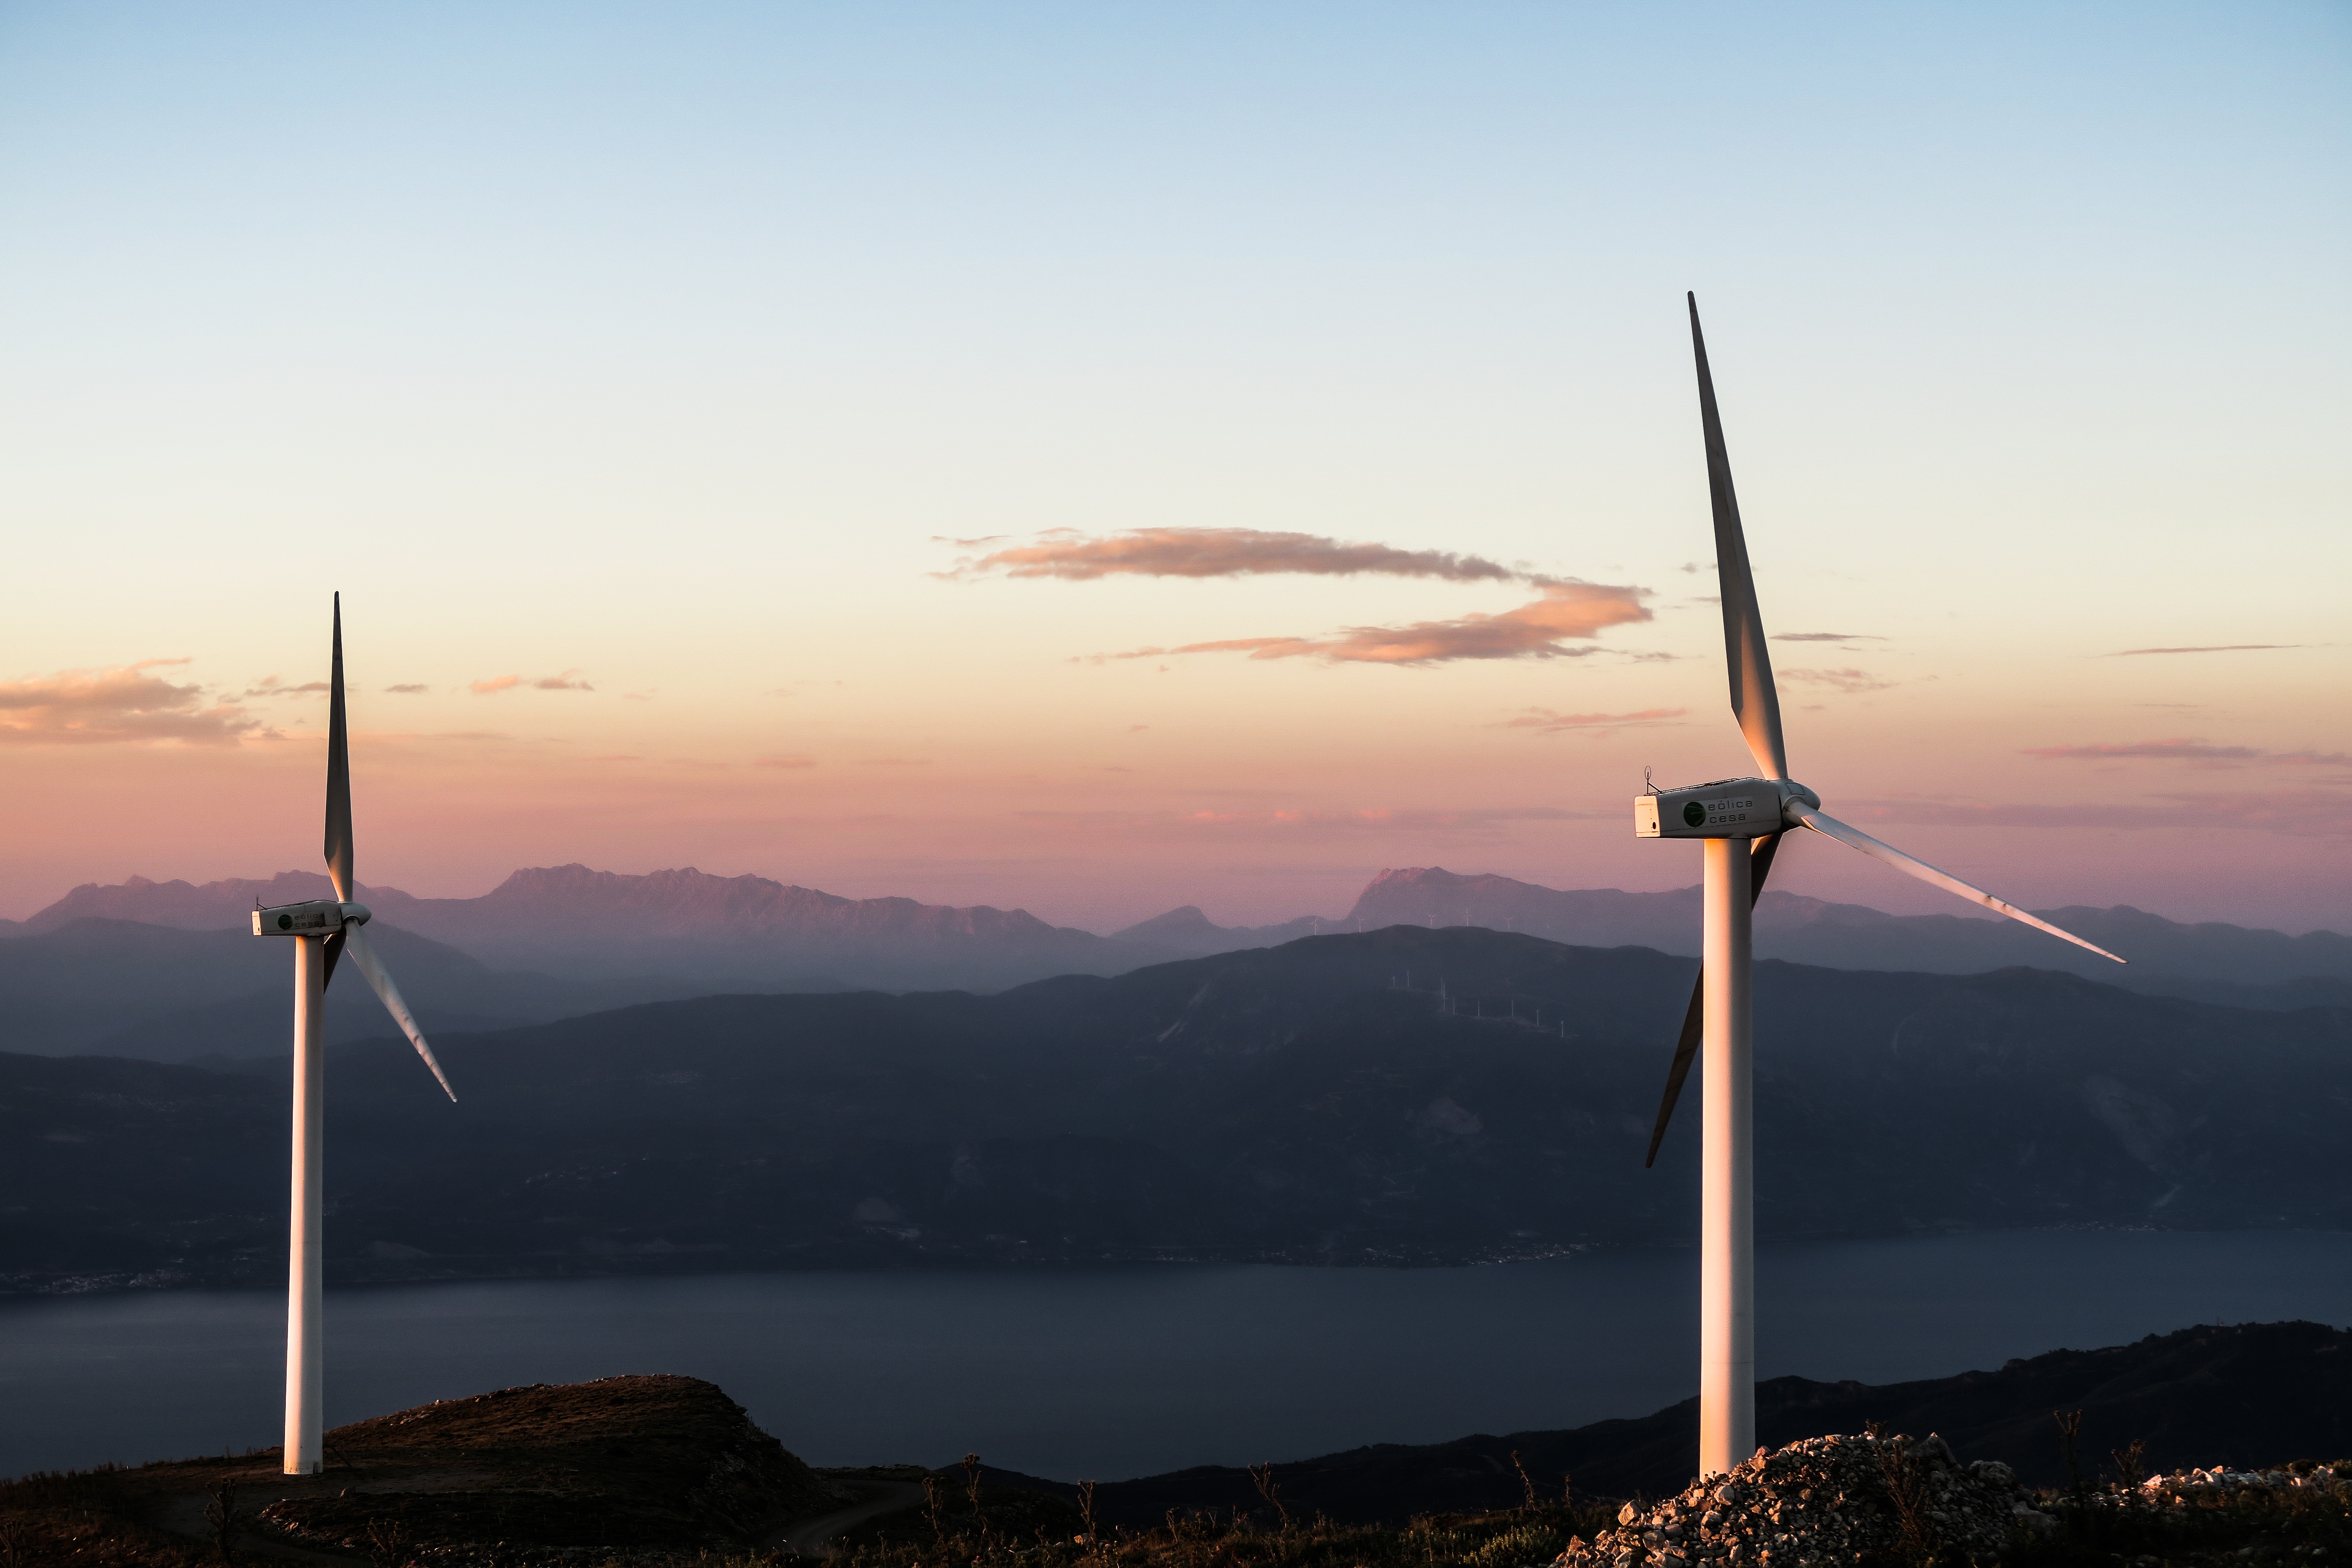 Wind Generation Today And Where It May Be Heading Northwest Power Since The First Turbine Built For Generating Electricity Began Operating In Late 1880s Advancing Technology Has Helped To Make A